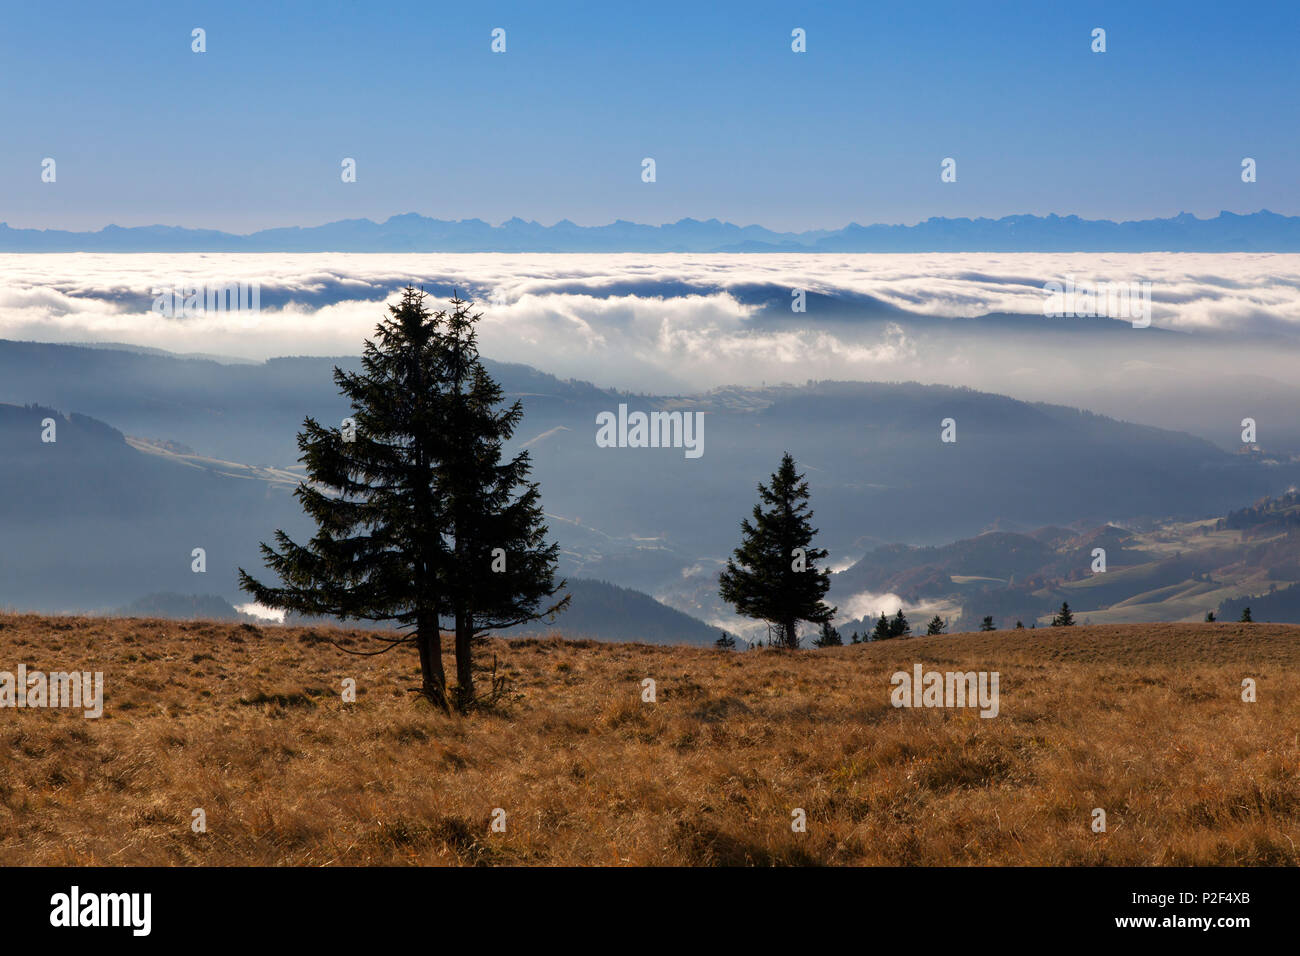 Fir trees at Belchen, Black Forest, Baden-Wuerttemberg, Germany - Stock Image